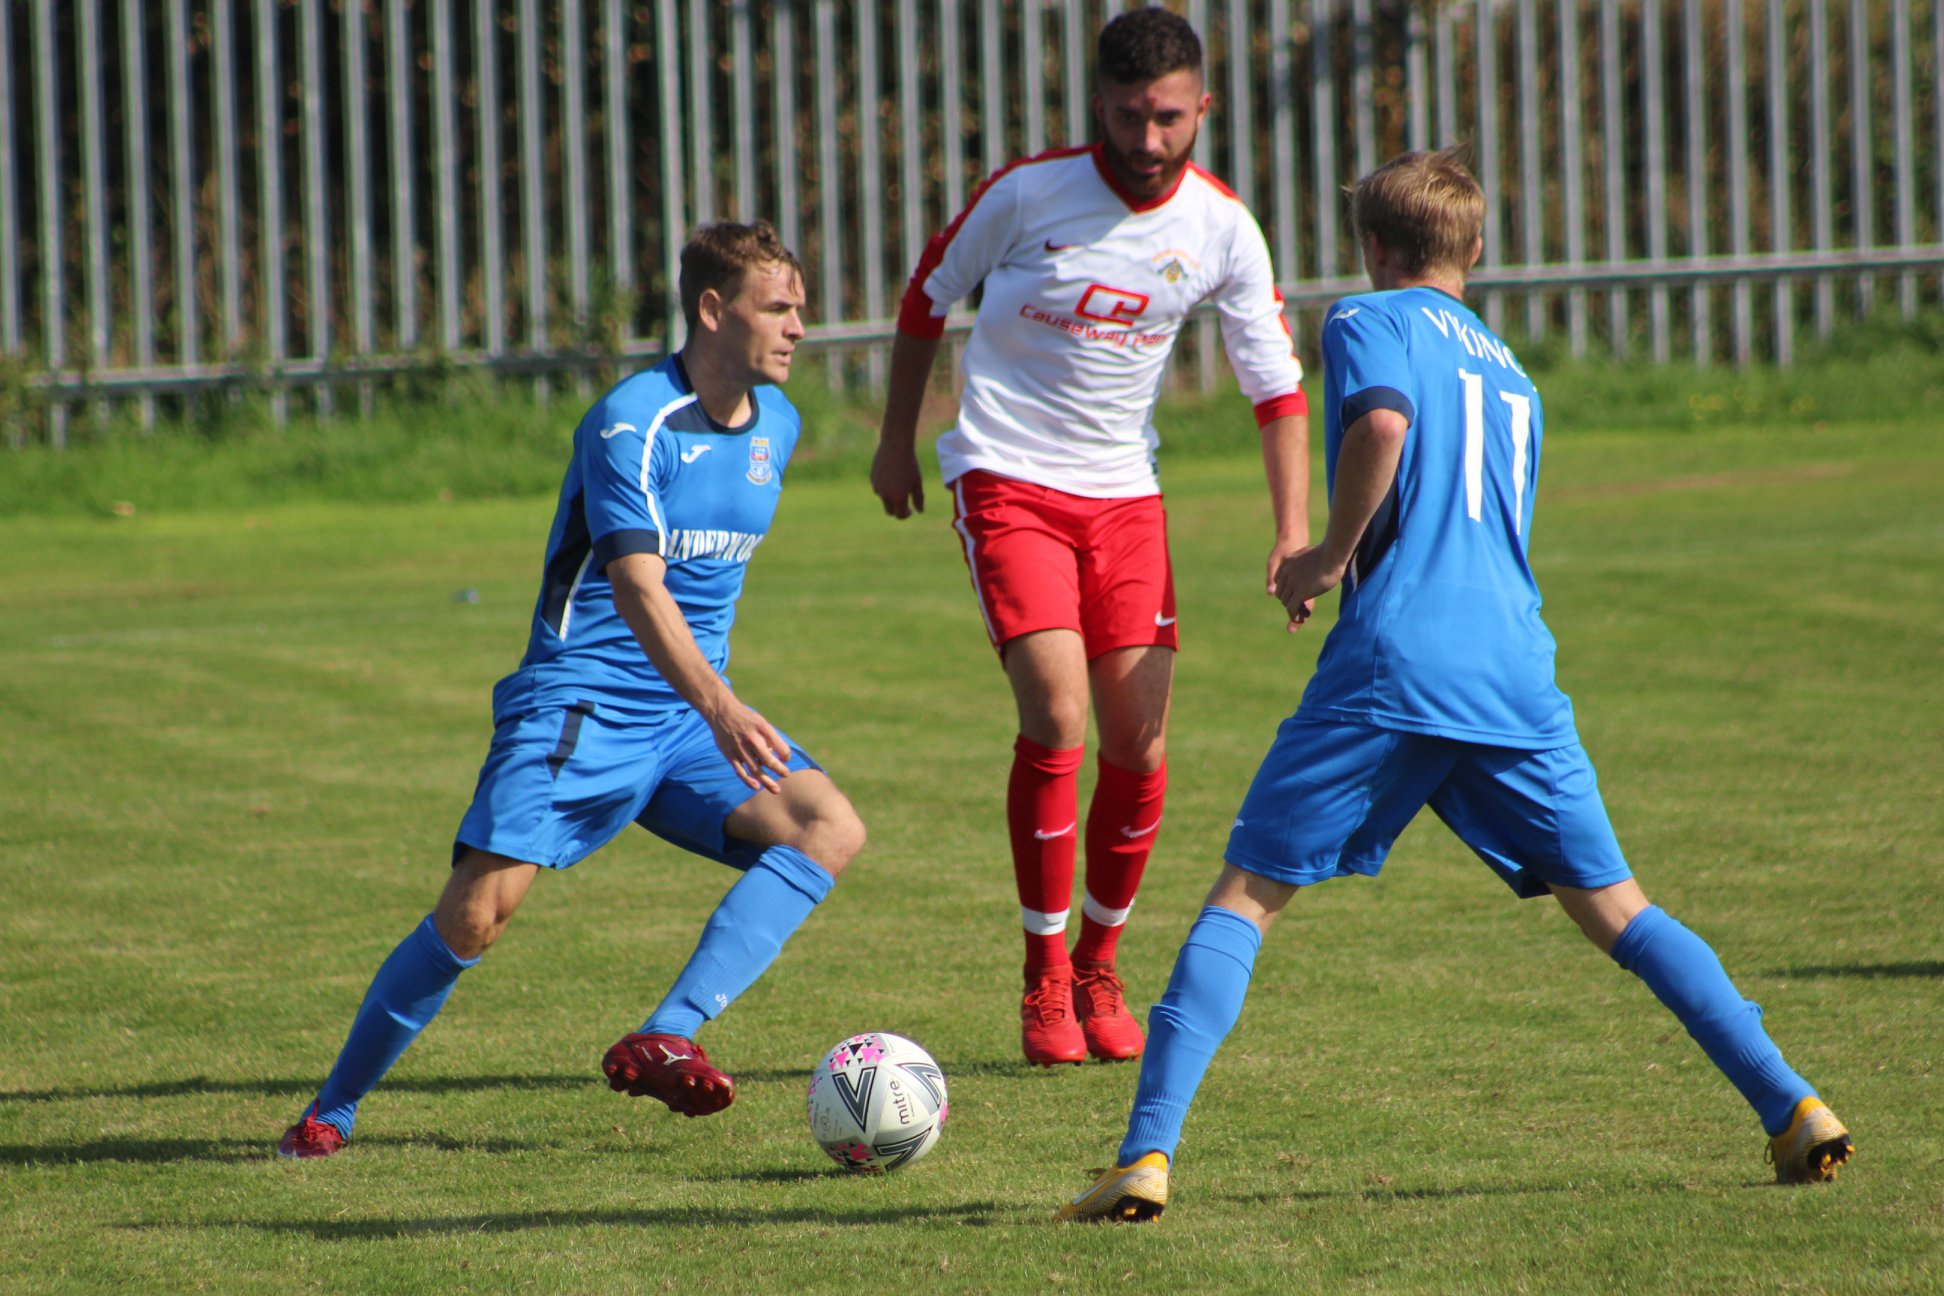 Vikings too strong for Wizards – The Pembrokeshire Herald